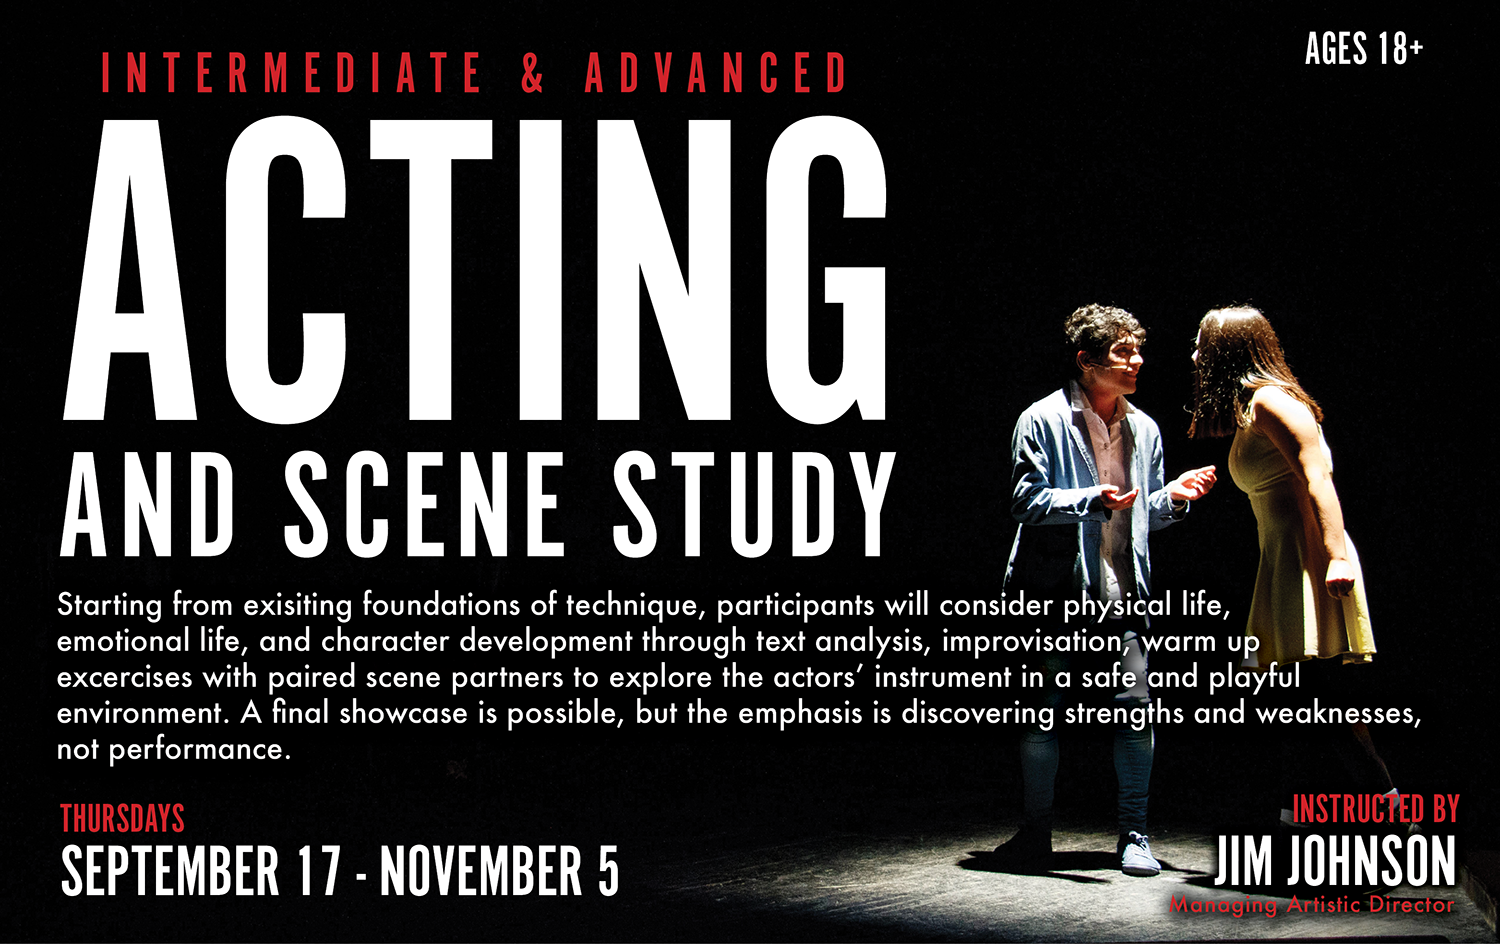 Acting and Scene Study - Marietta Center for the Arts